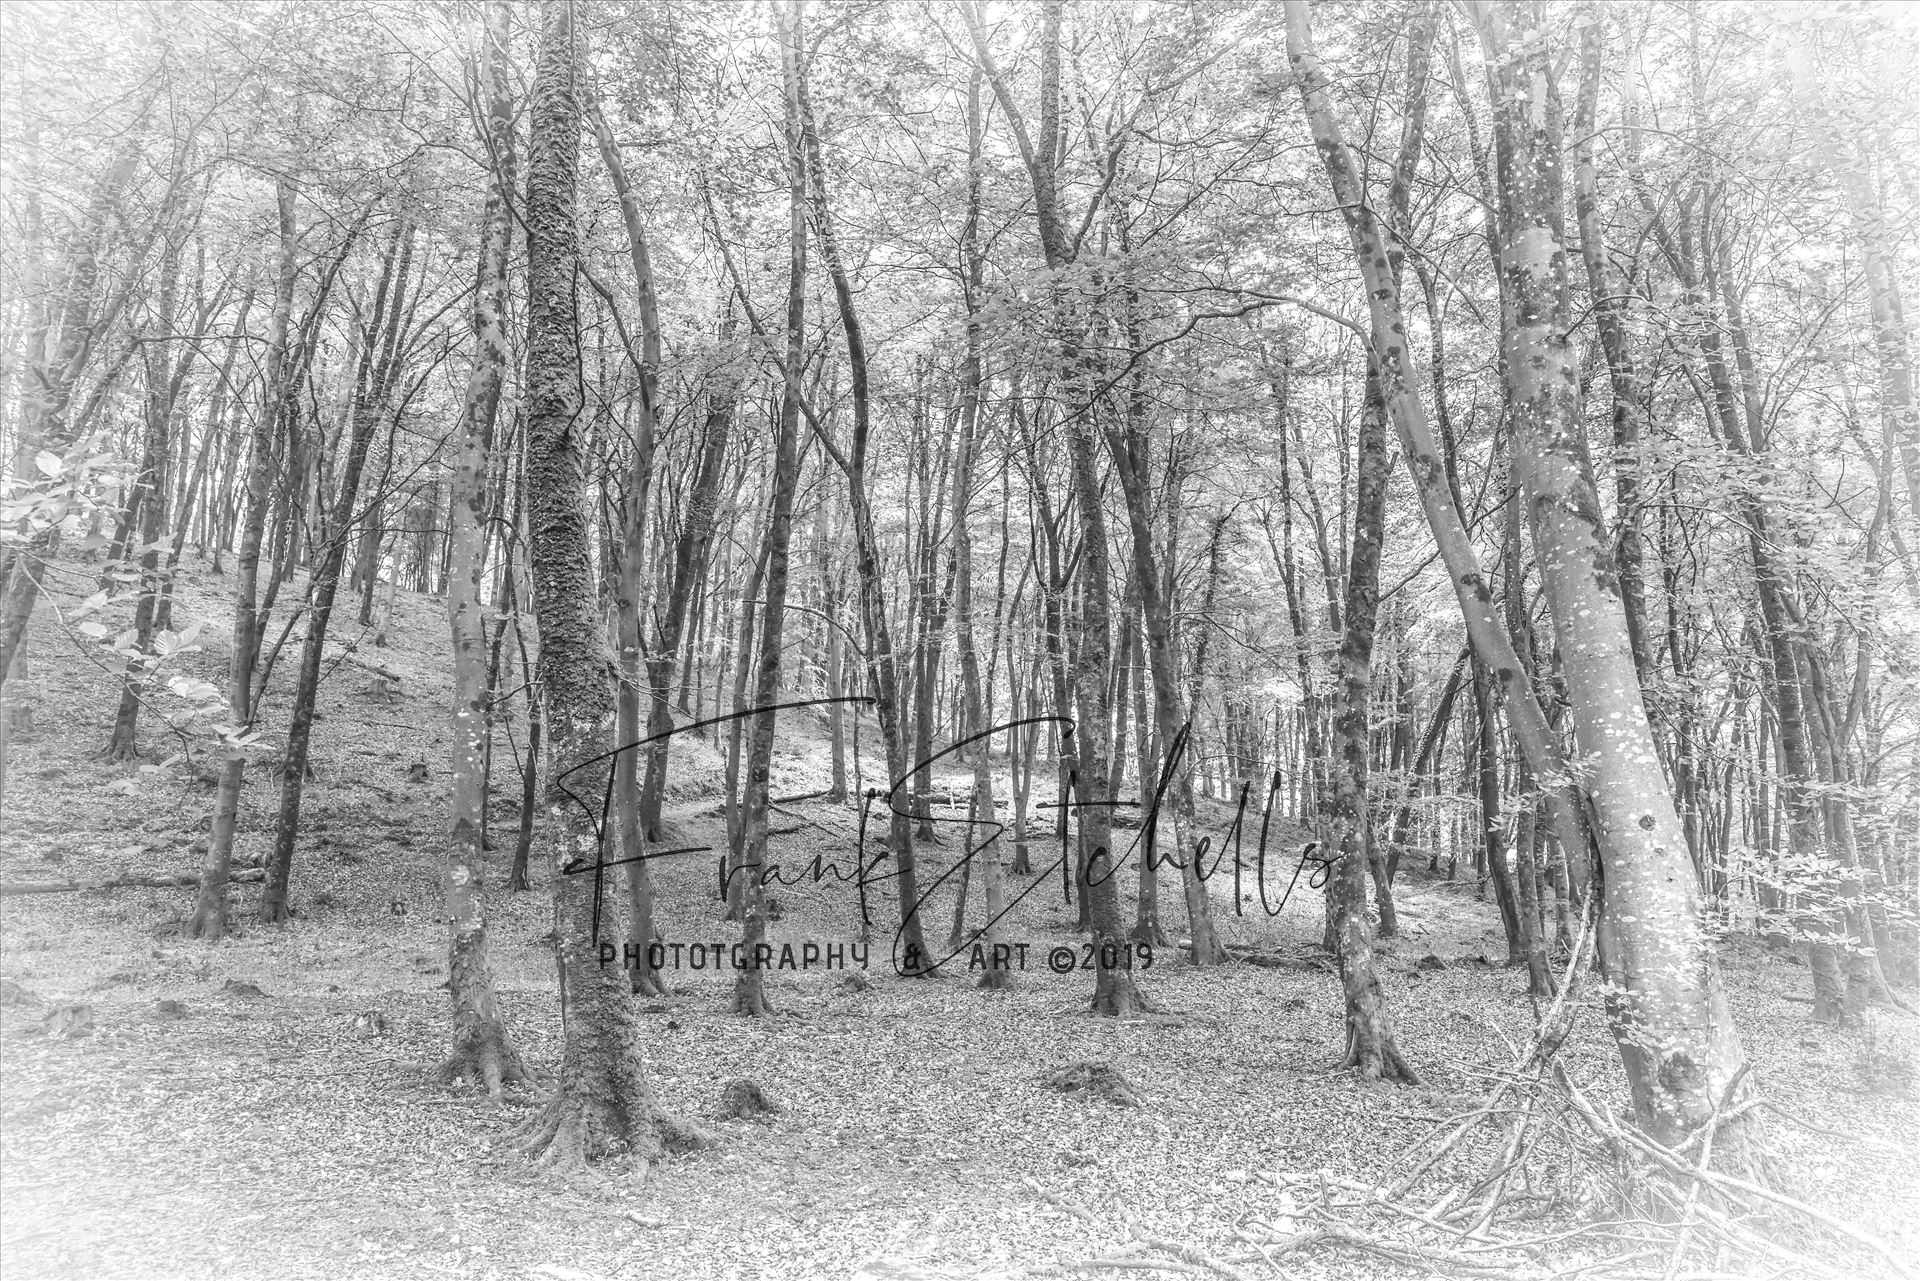 Watersmeet Wood, BW, Sketch Effect - A trip to Watersmeet in Devon. Took a number of images while walking round through the woodland. Did an edit of this to look like a sketch/drawing by Frank Etchells Photography